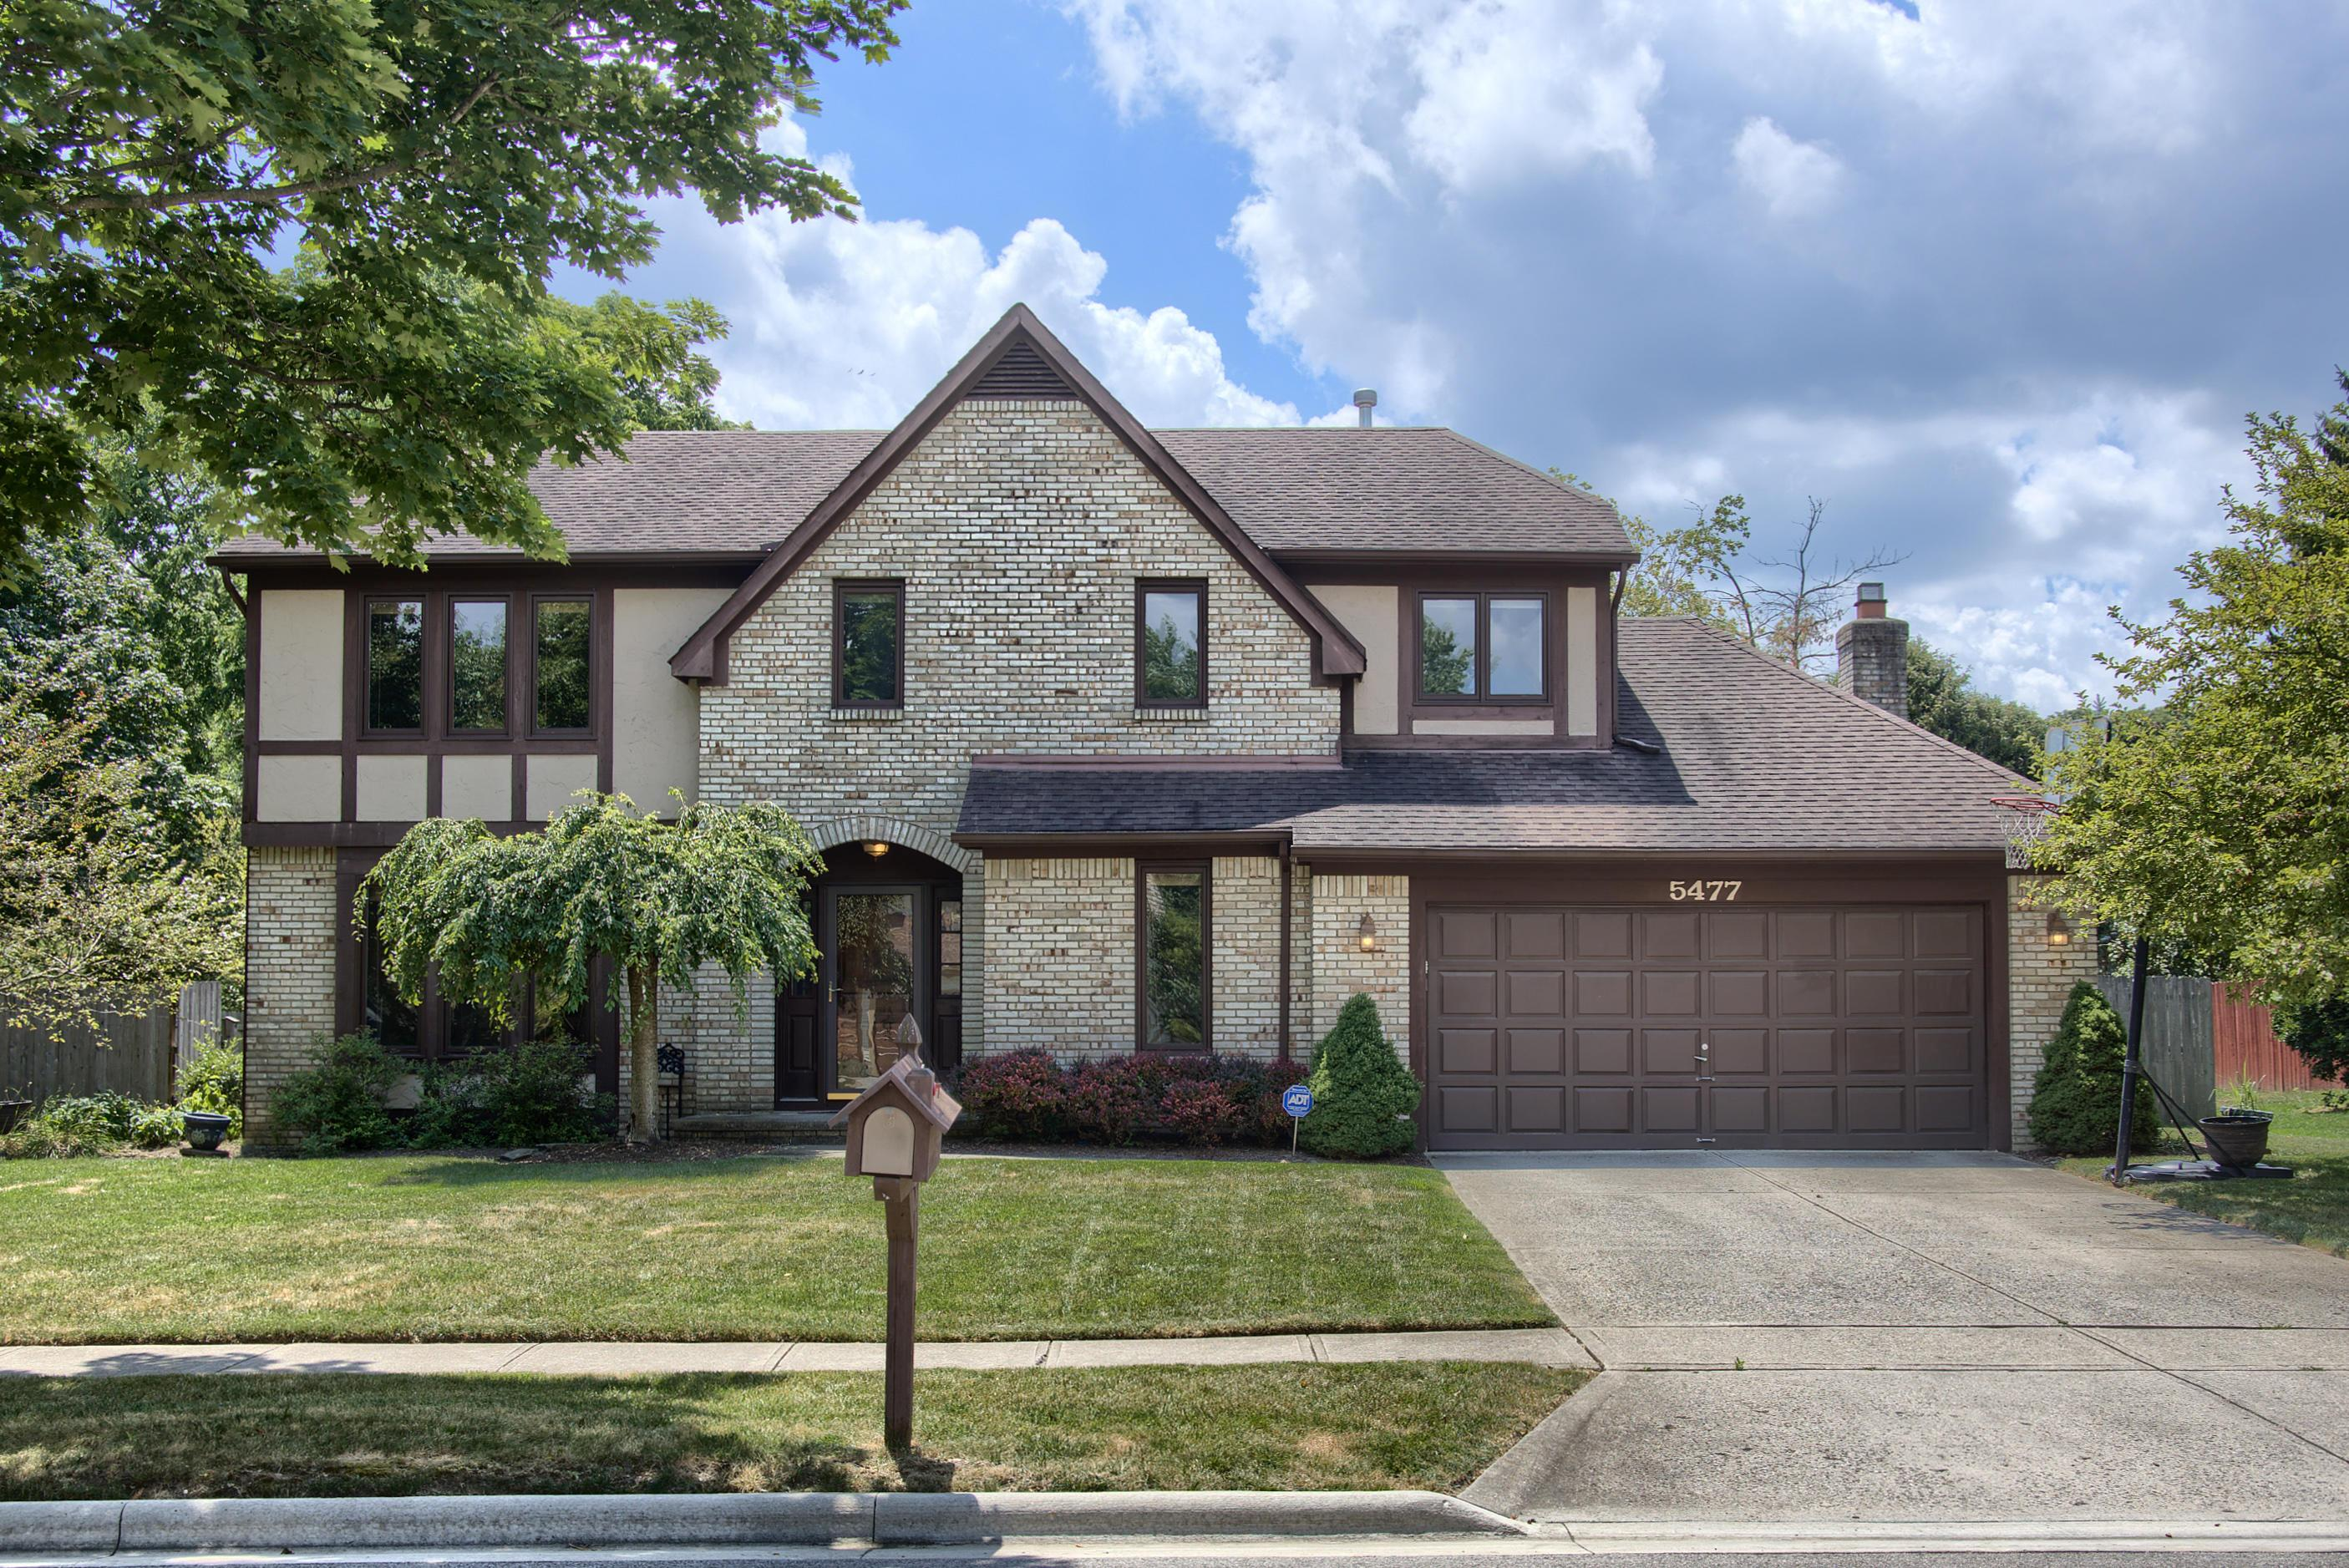 5477 Old Pond Drive, Dublin, Ohio 43017, 4 Bedrooms Bedrooms, ,4 BathroomsBathrooms,Residential,For Sale,Old Pond,220025325